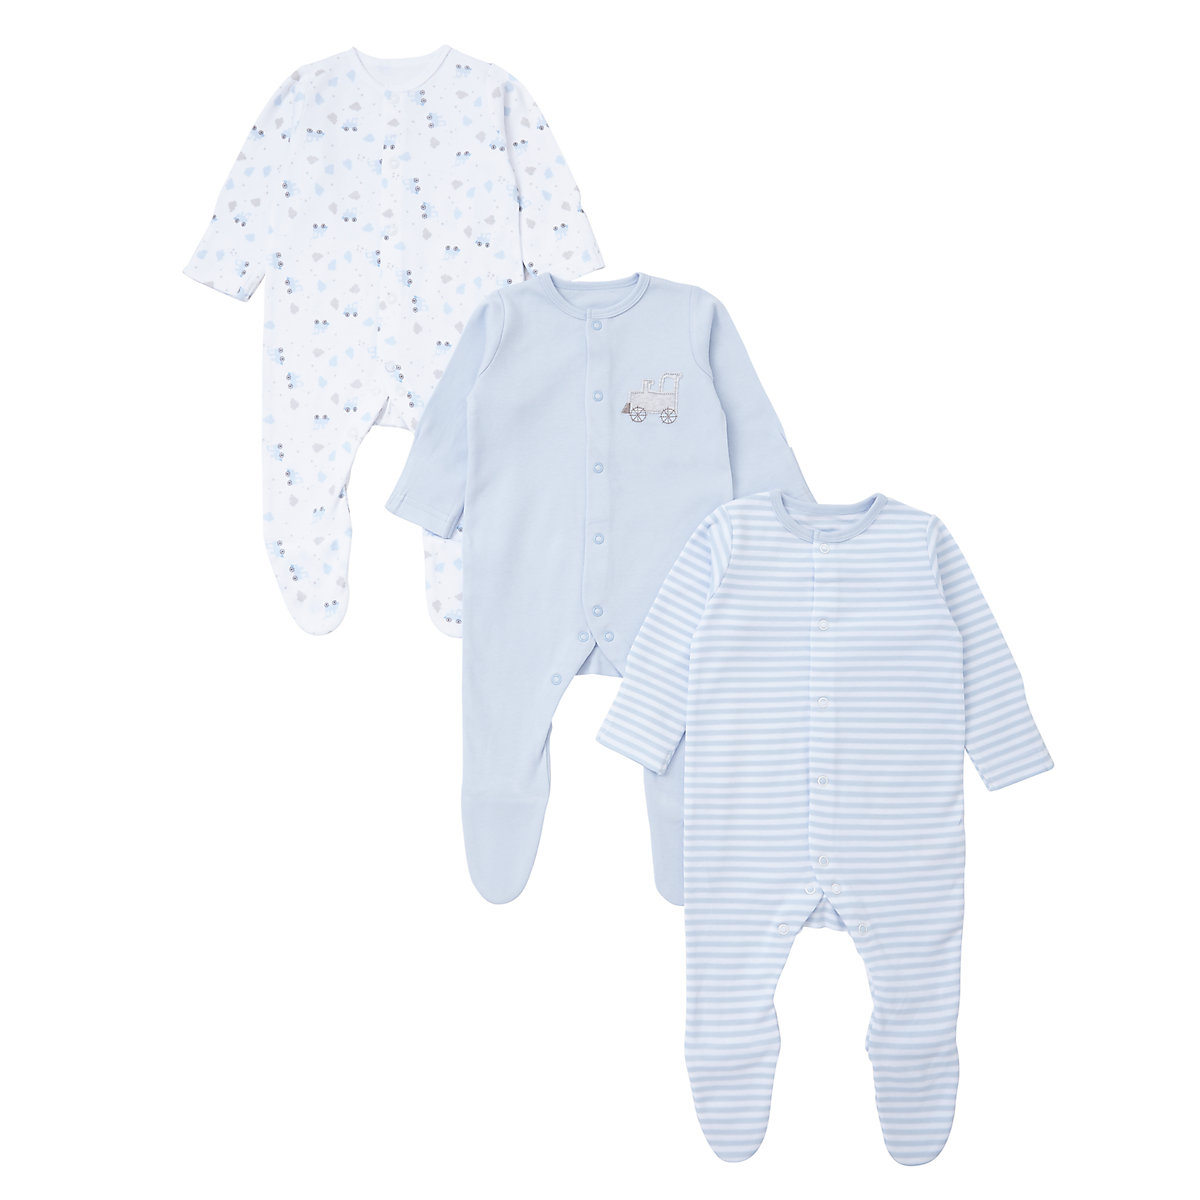 Mothercare Newborns Train Sleepsuits - 3 Pack Size 2-3 years